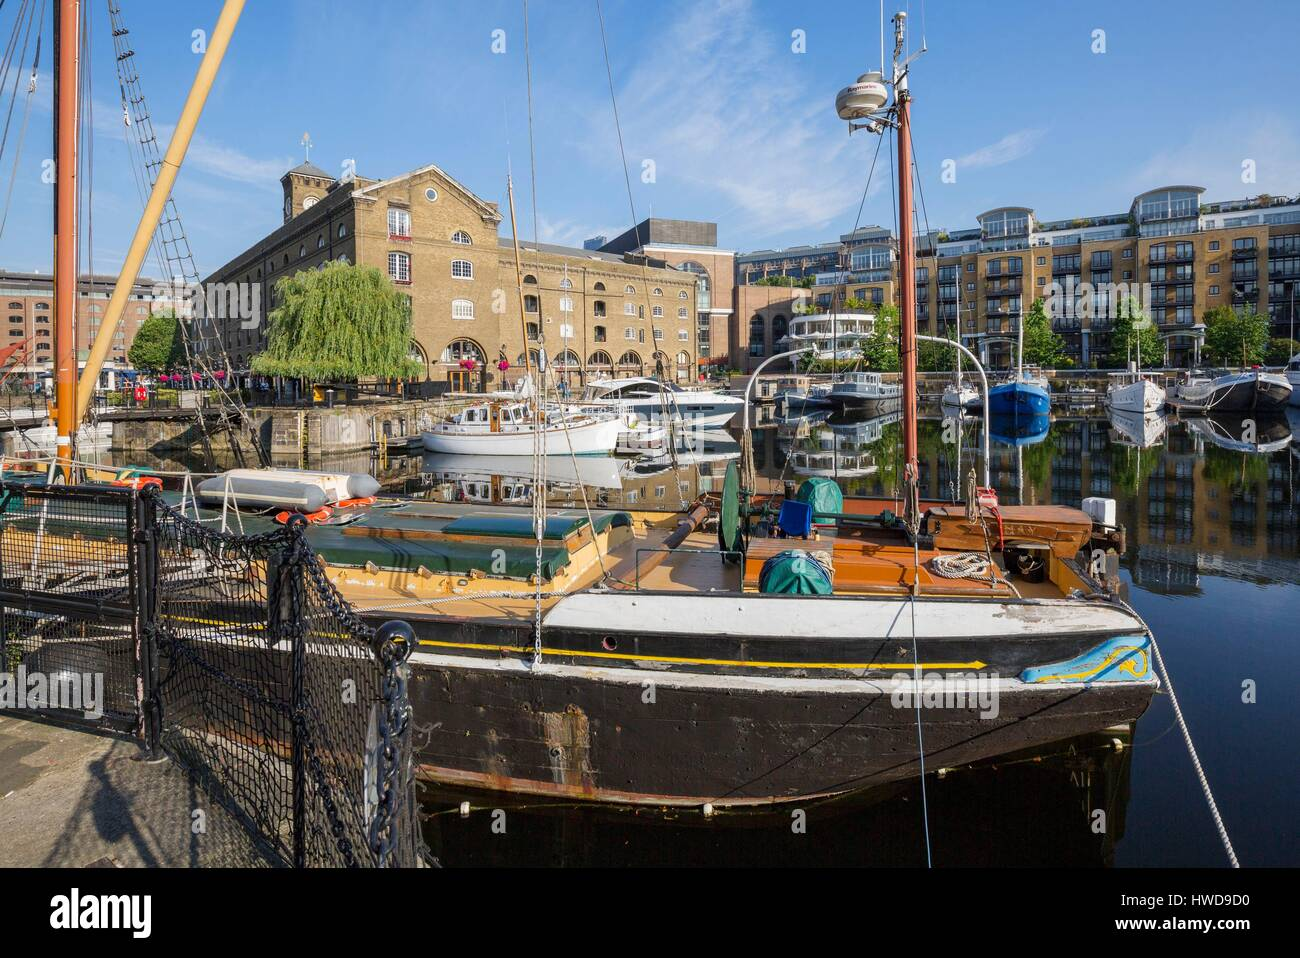 United Kingdom, London Borough of Tower Hamlets north of the Thames near Tower Bridge and the Tower of London, the - Stock Image